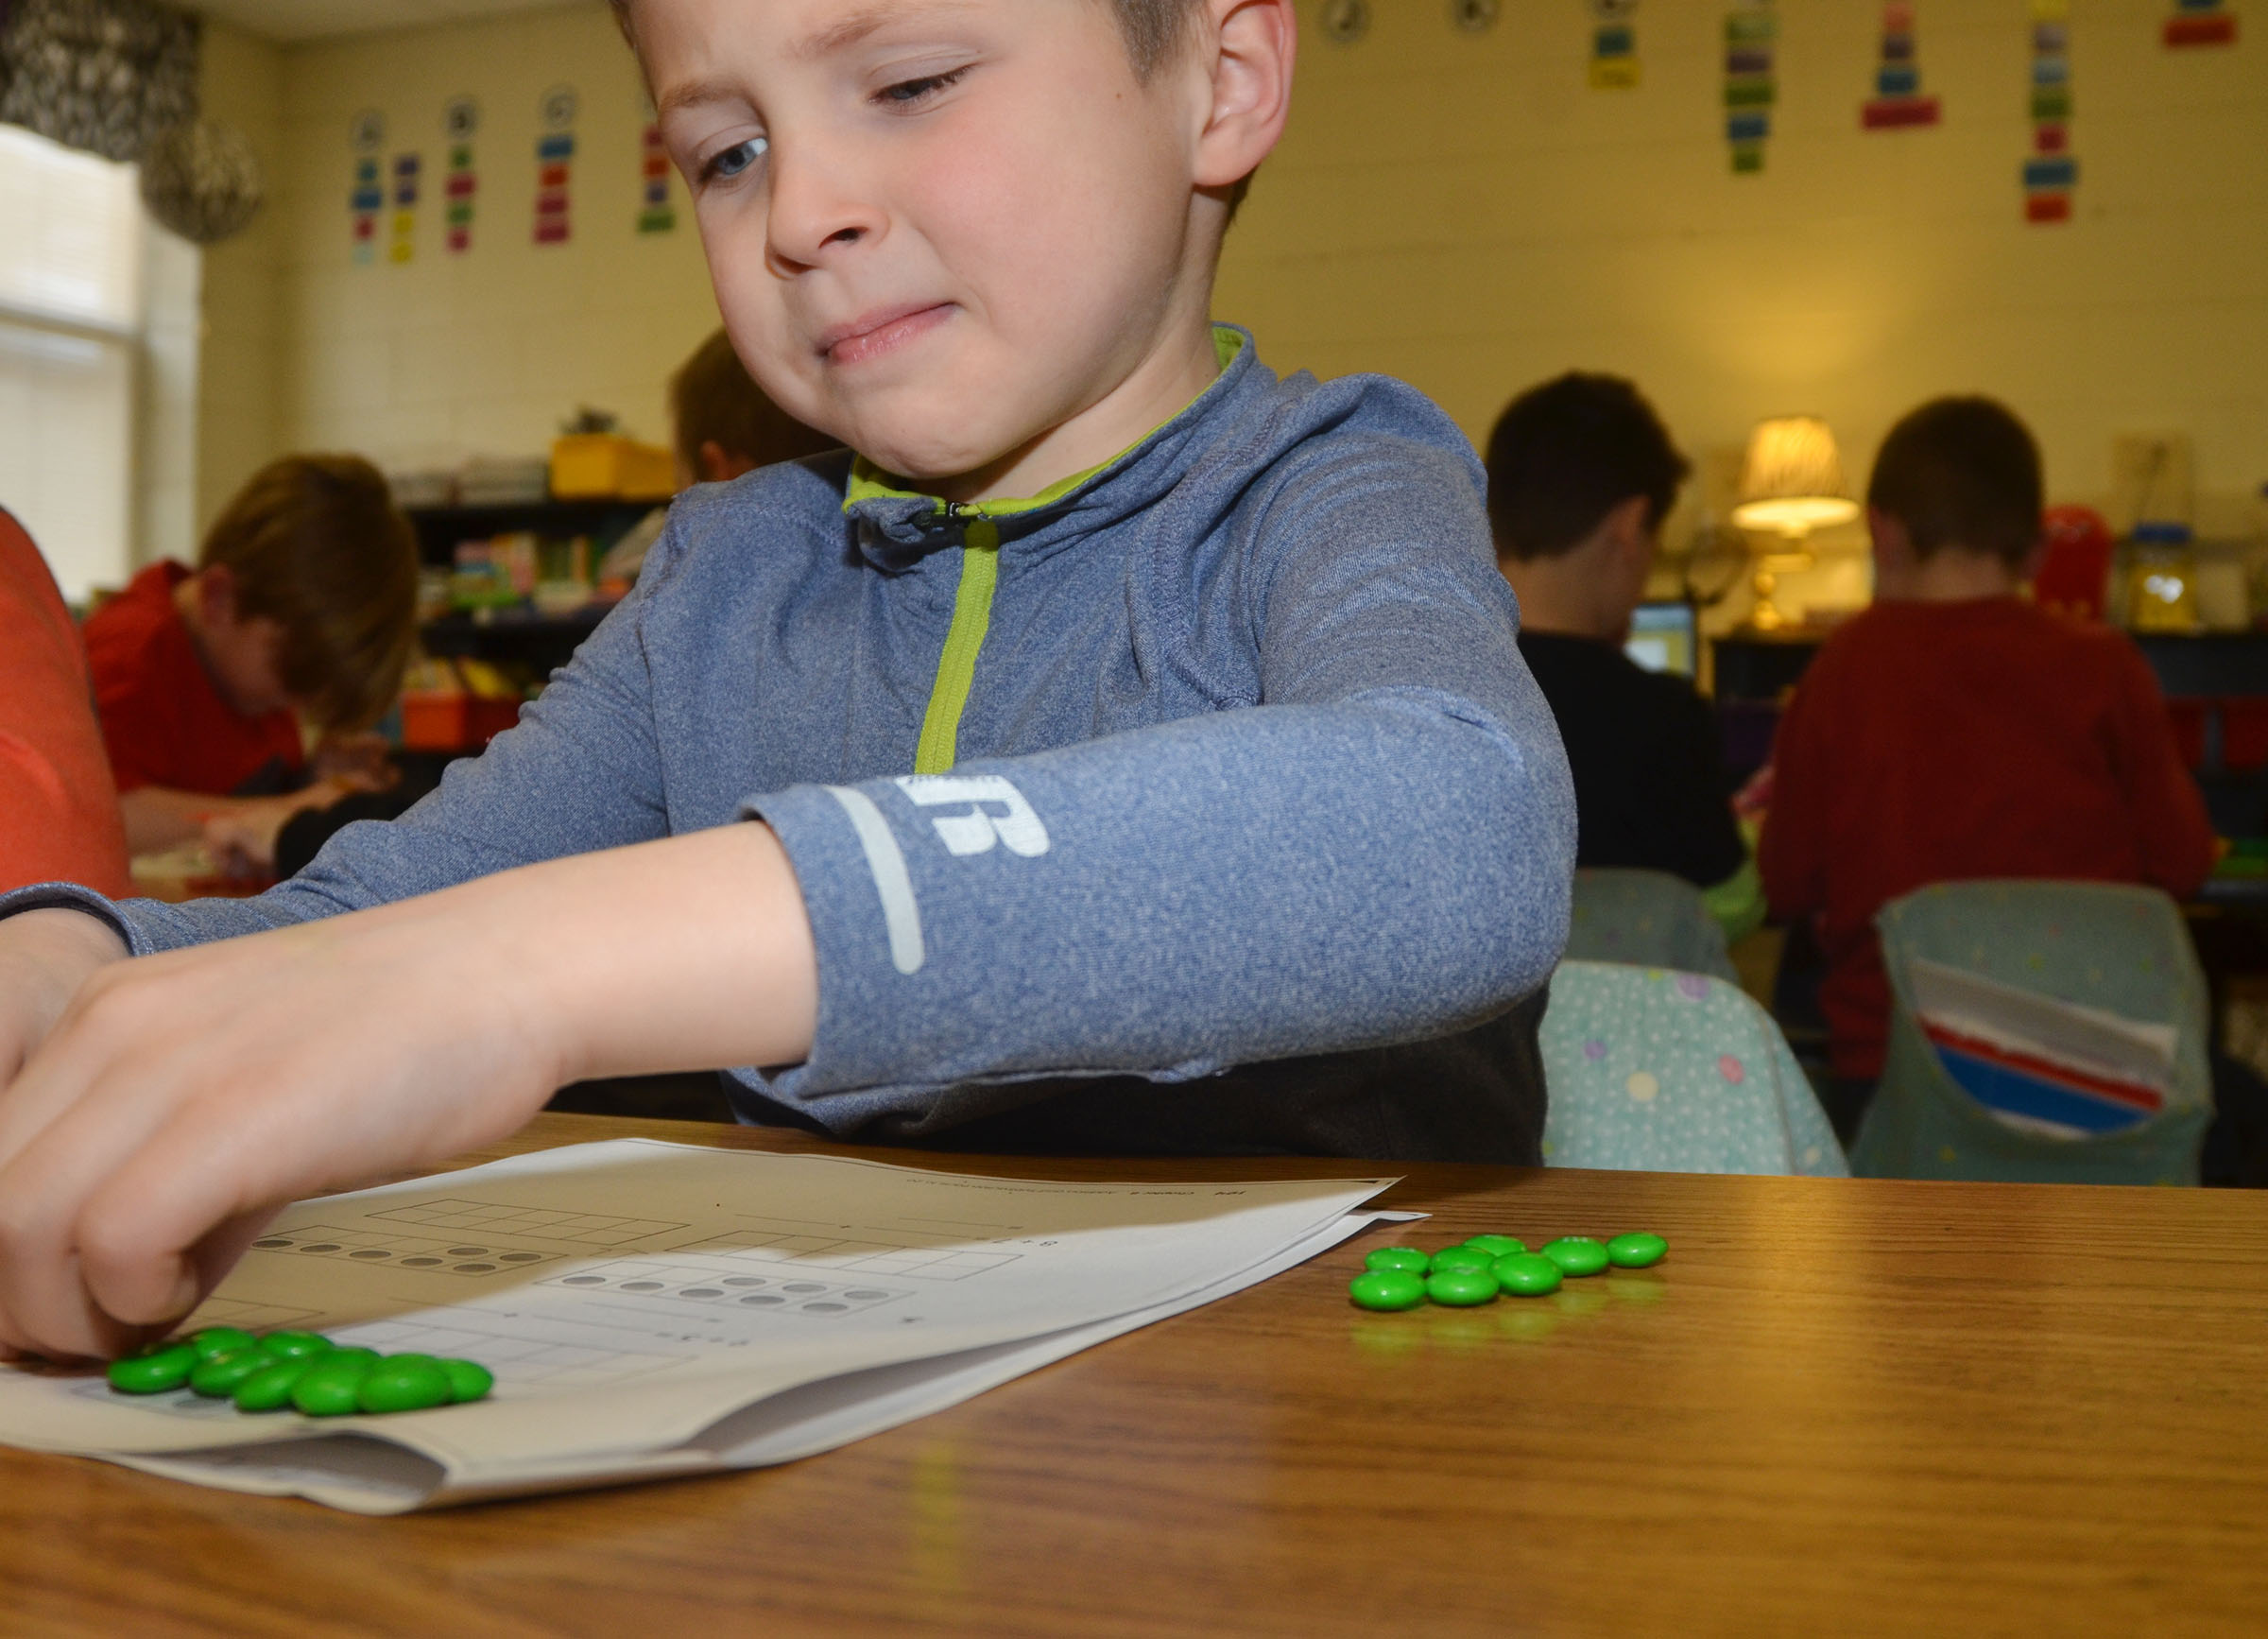 CES first-grader Bryson Gabehart counts with M&Ms.